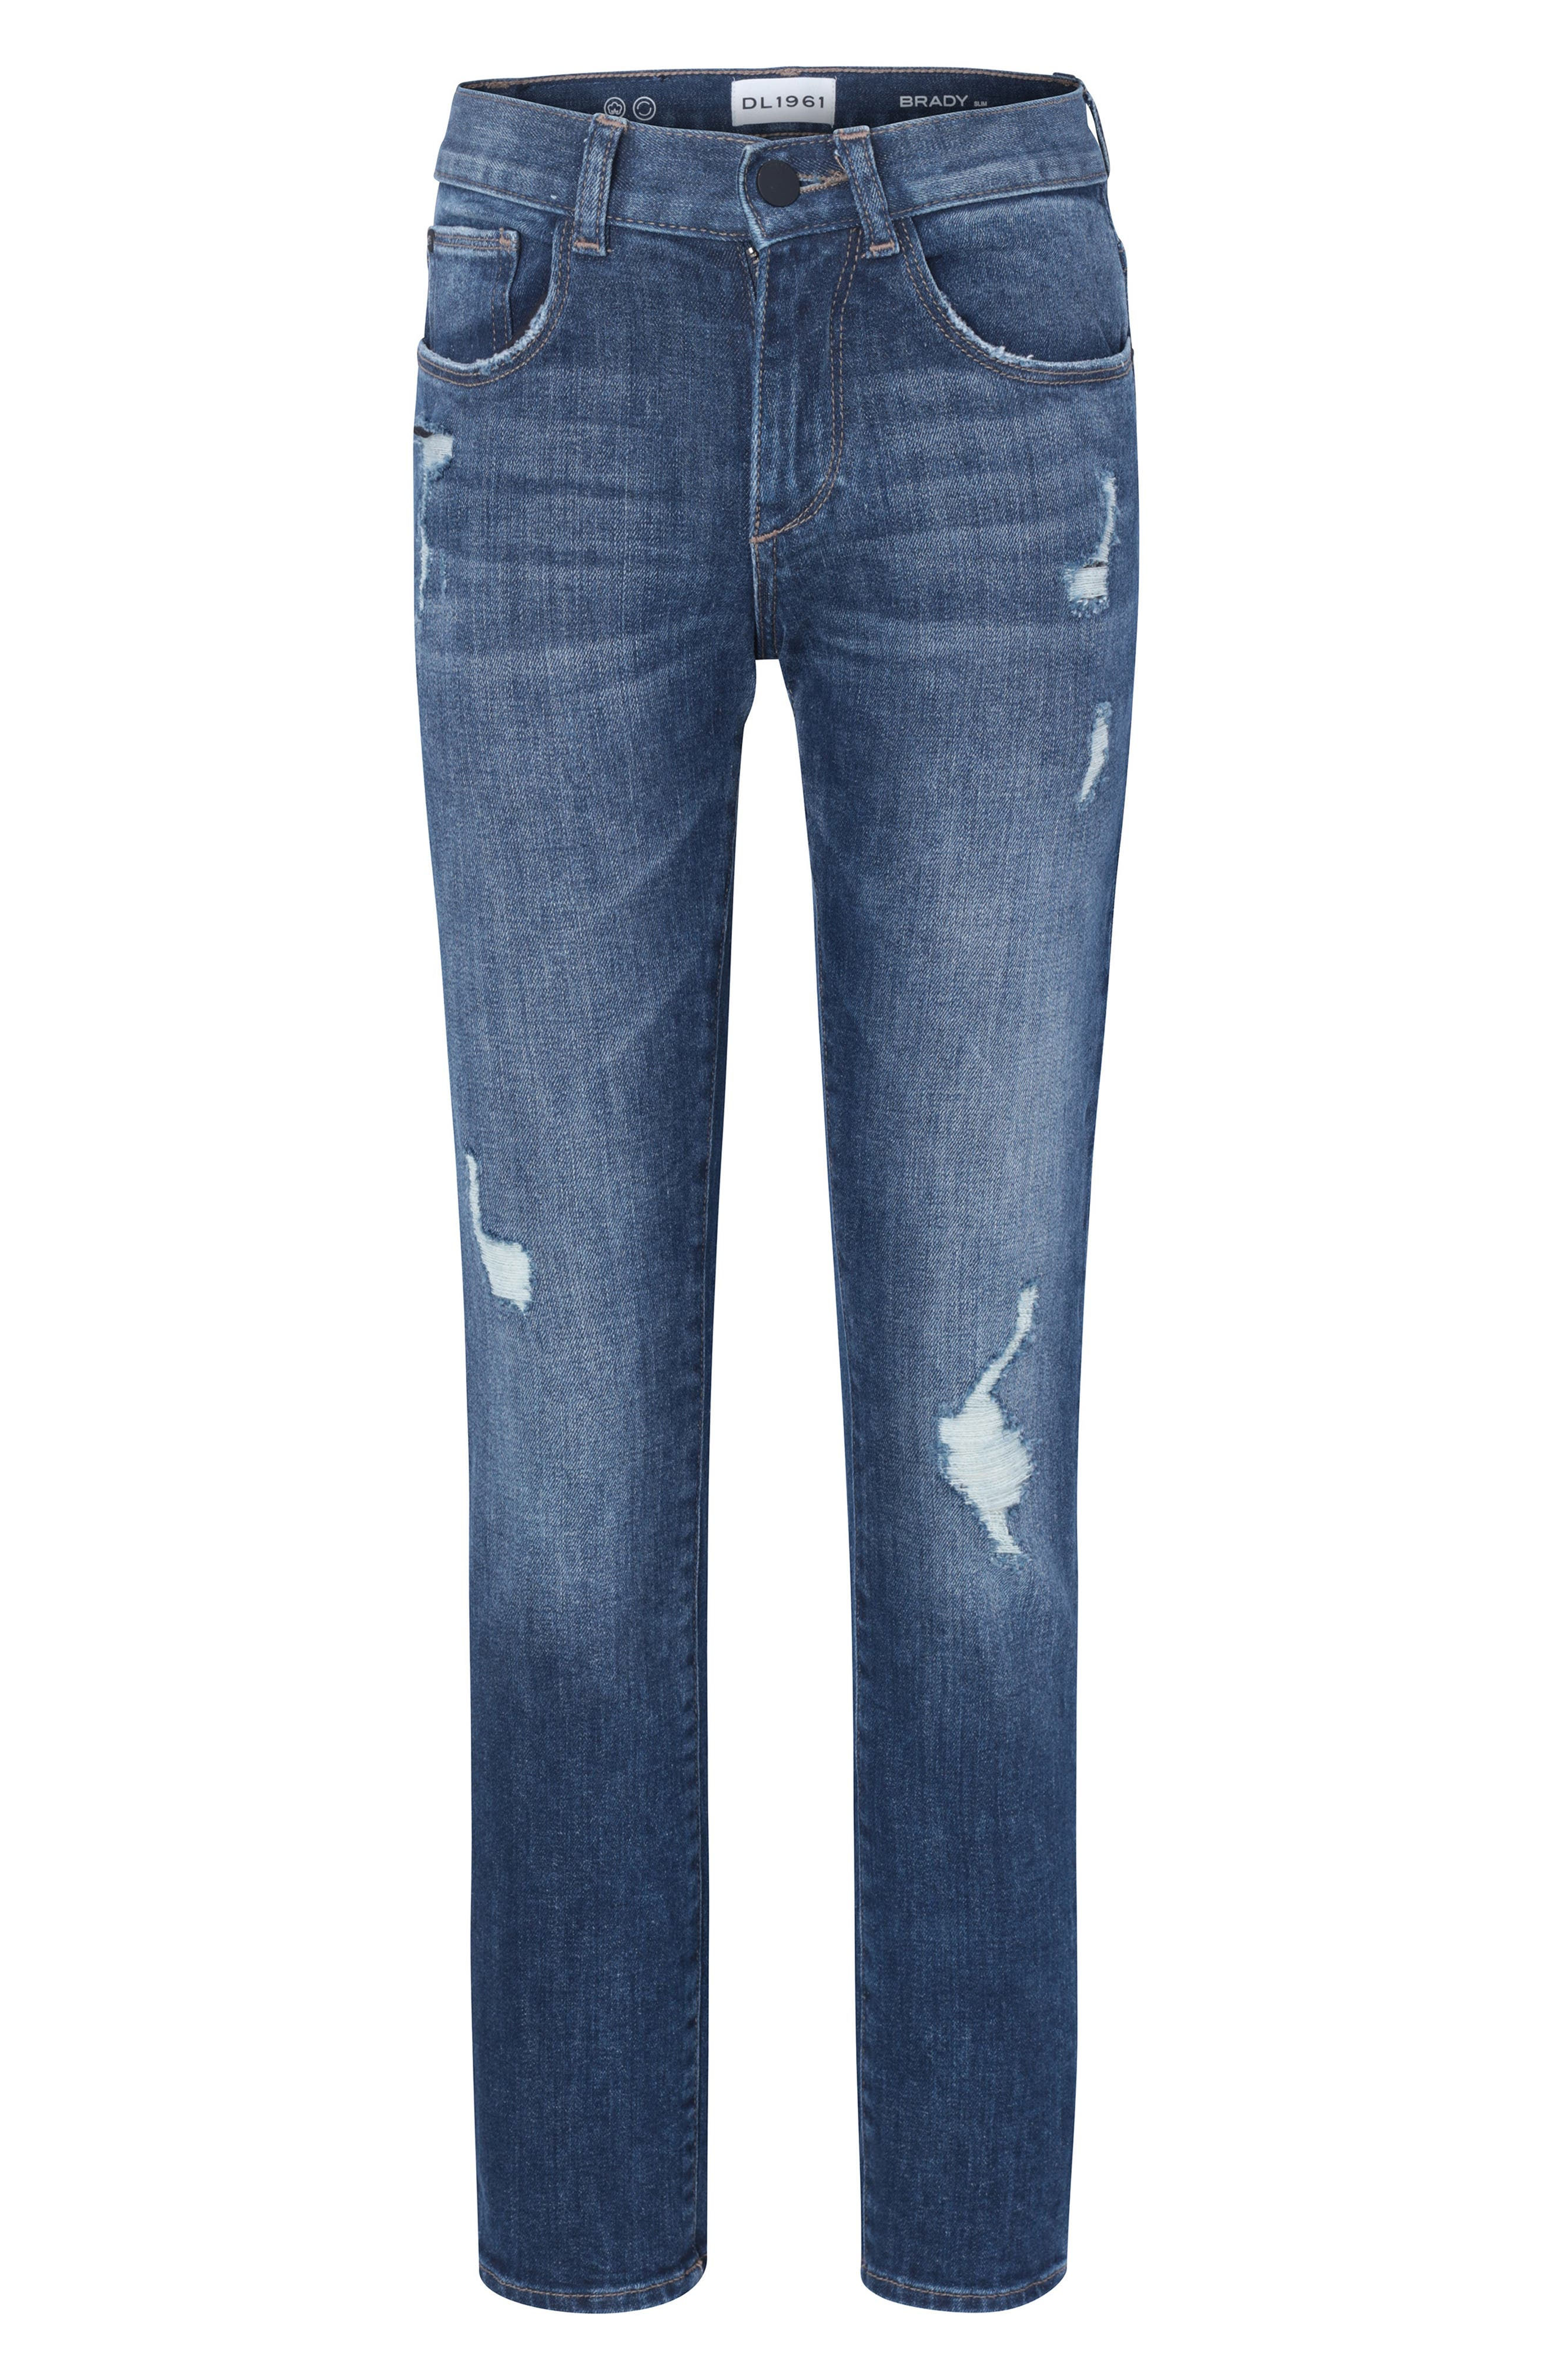 Brady Distressed Jeans,                         Main,                         color, MOOD